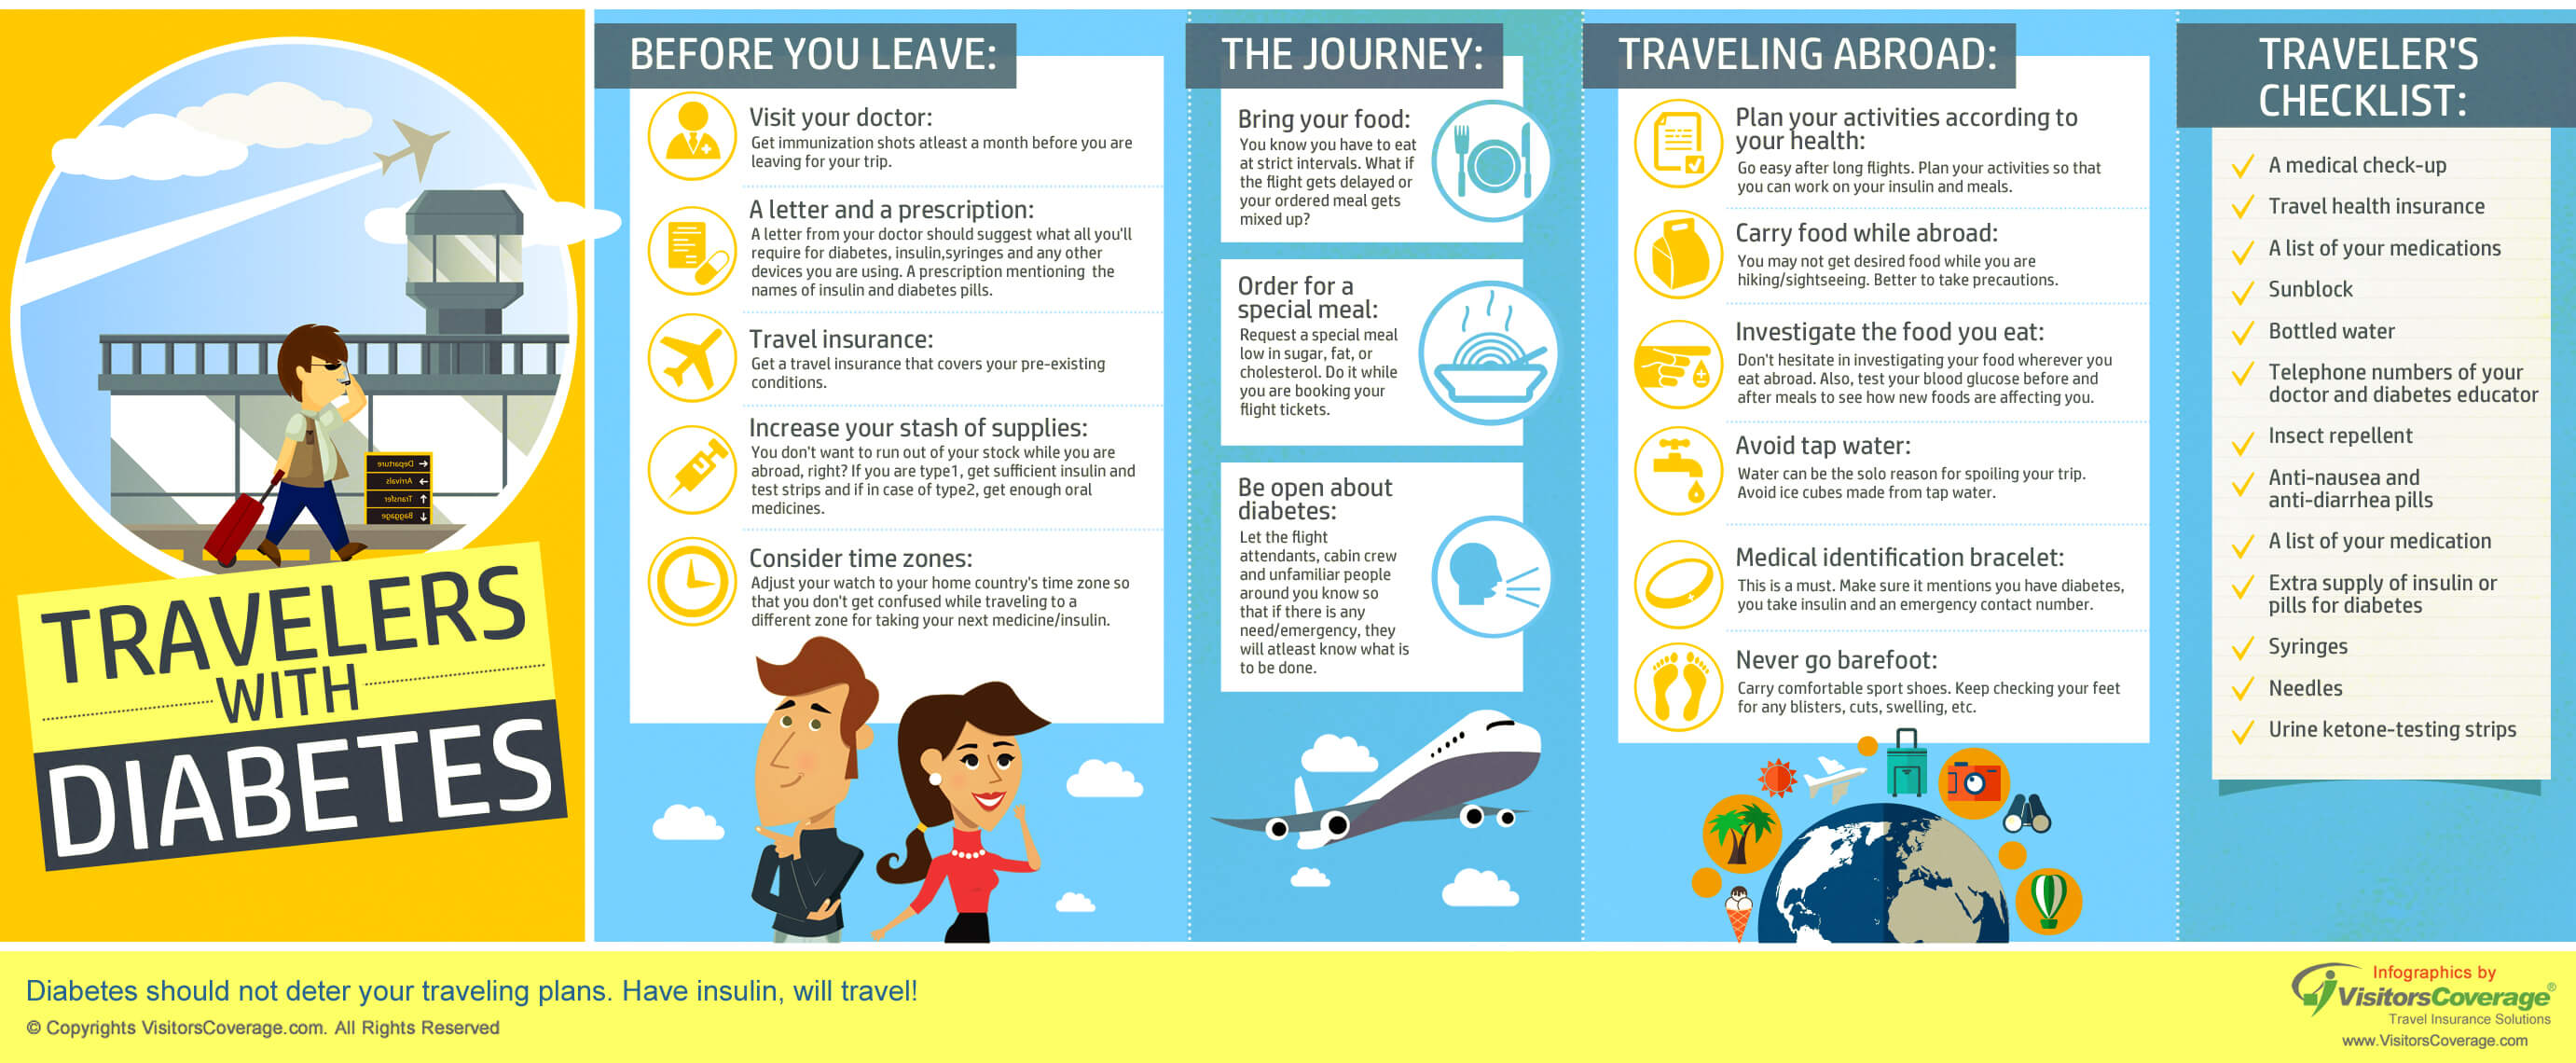 Infographic on traveling tips for travelers with diabetes